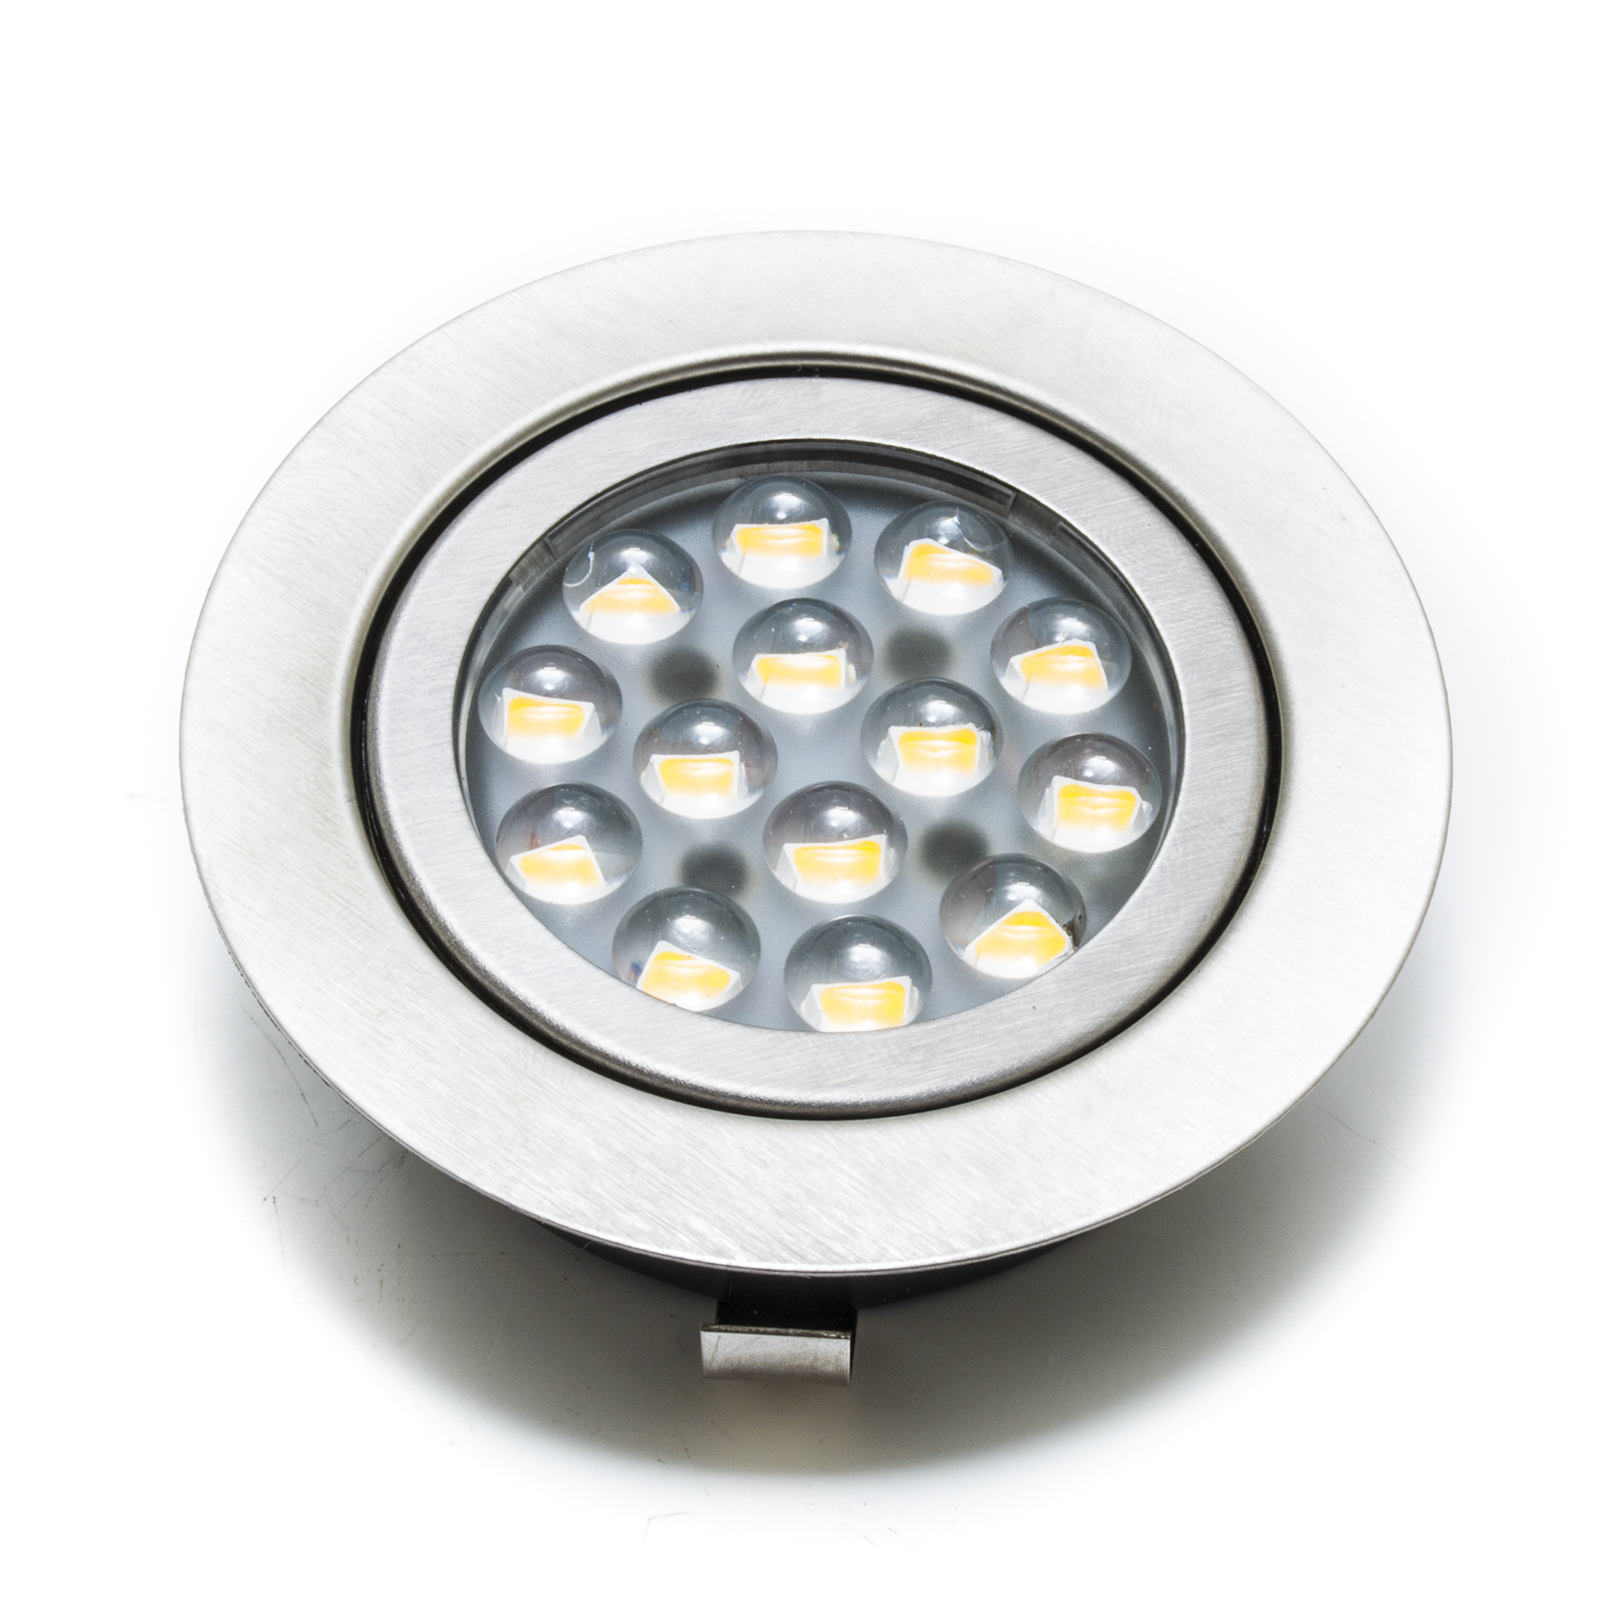 Norman faretto led incasso foro 6cm planetitaly for Faretti a led incasso